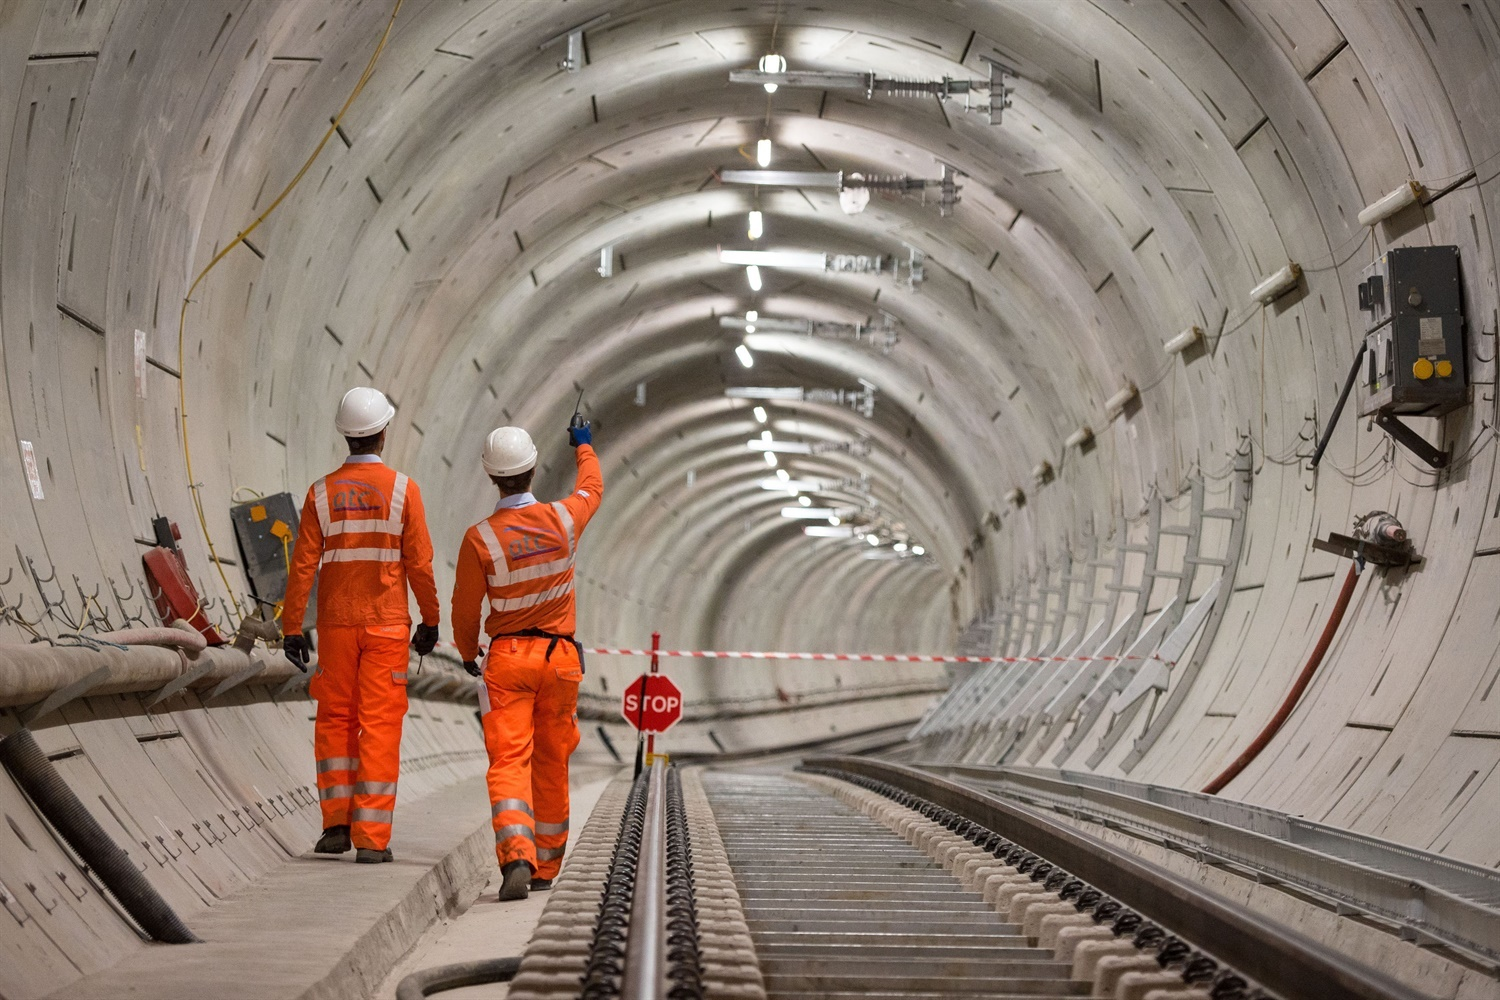 MPs 'not convinced' two-year delay and £3bn overspend will be enough as committee slams Crossrail's 'disastrous' governance